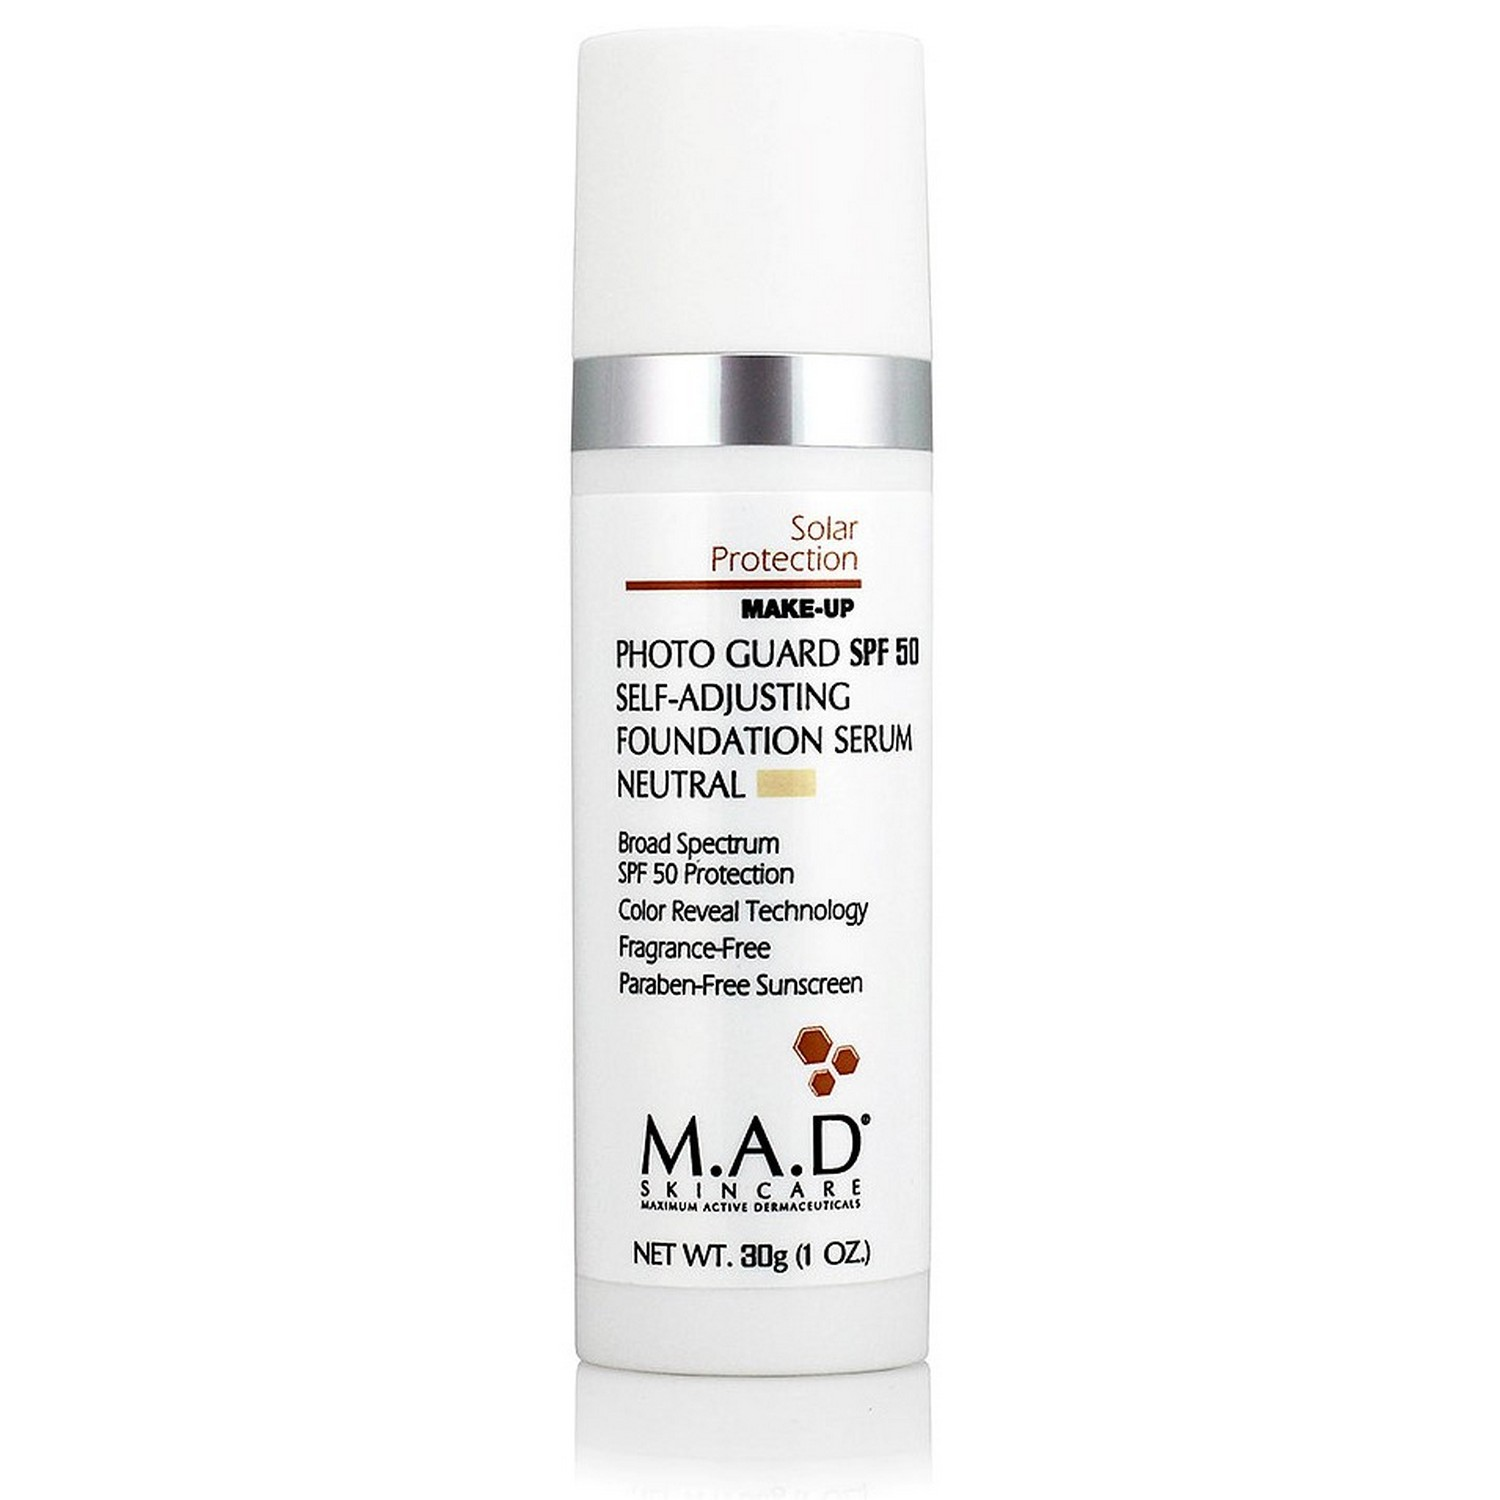 M.A.D SKINCARE PHOTO GUARD SPF 50 SELF-ADJUSTING FOUNDATION SERUM NEUTRAL (30 g / 1.0 oz)